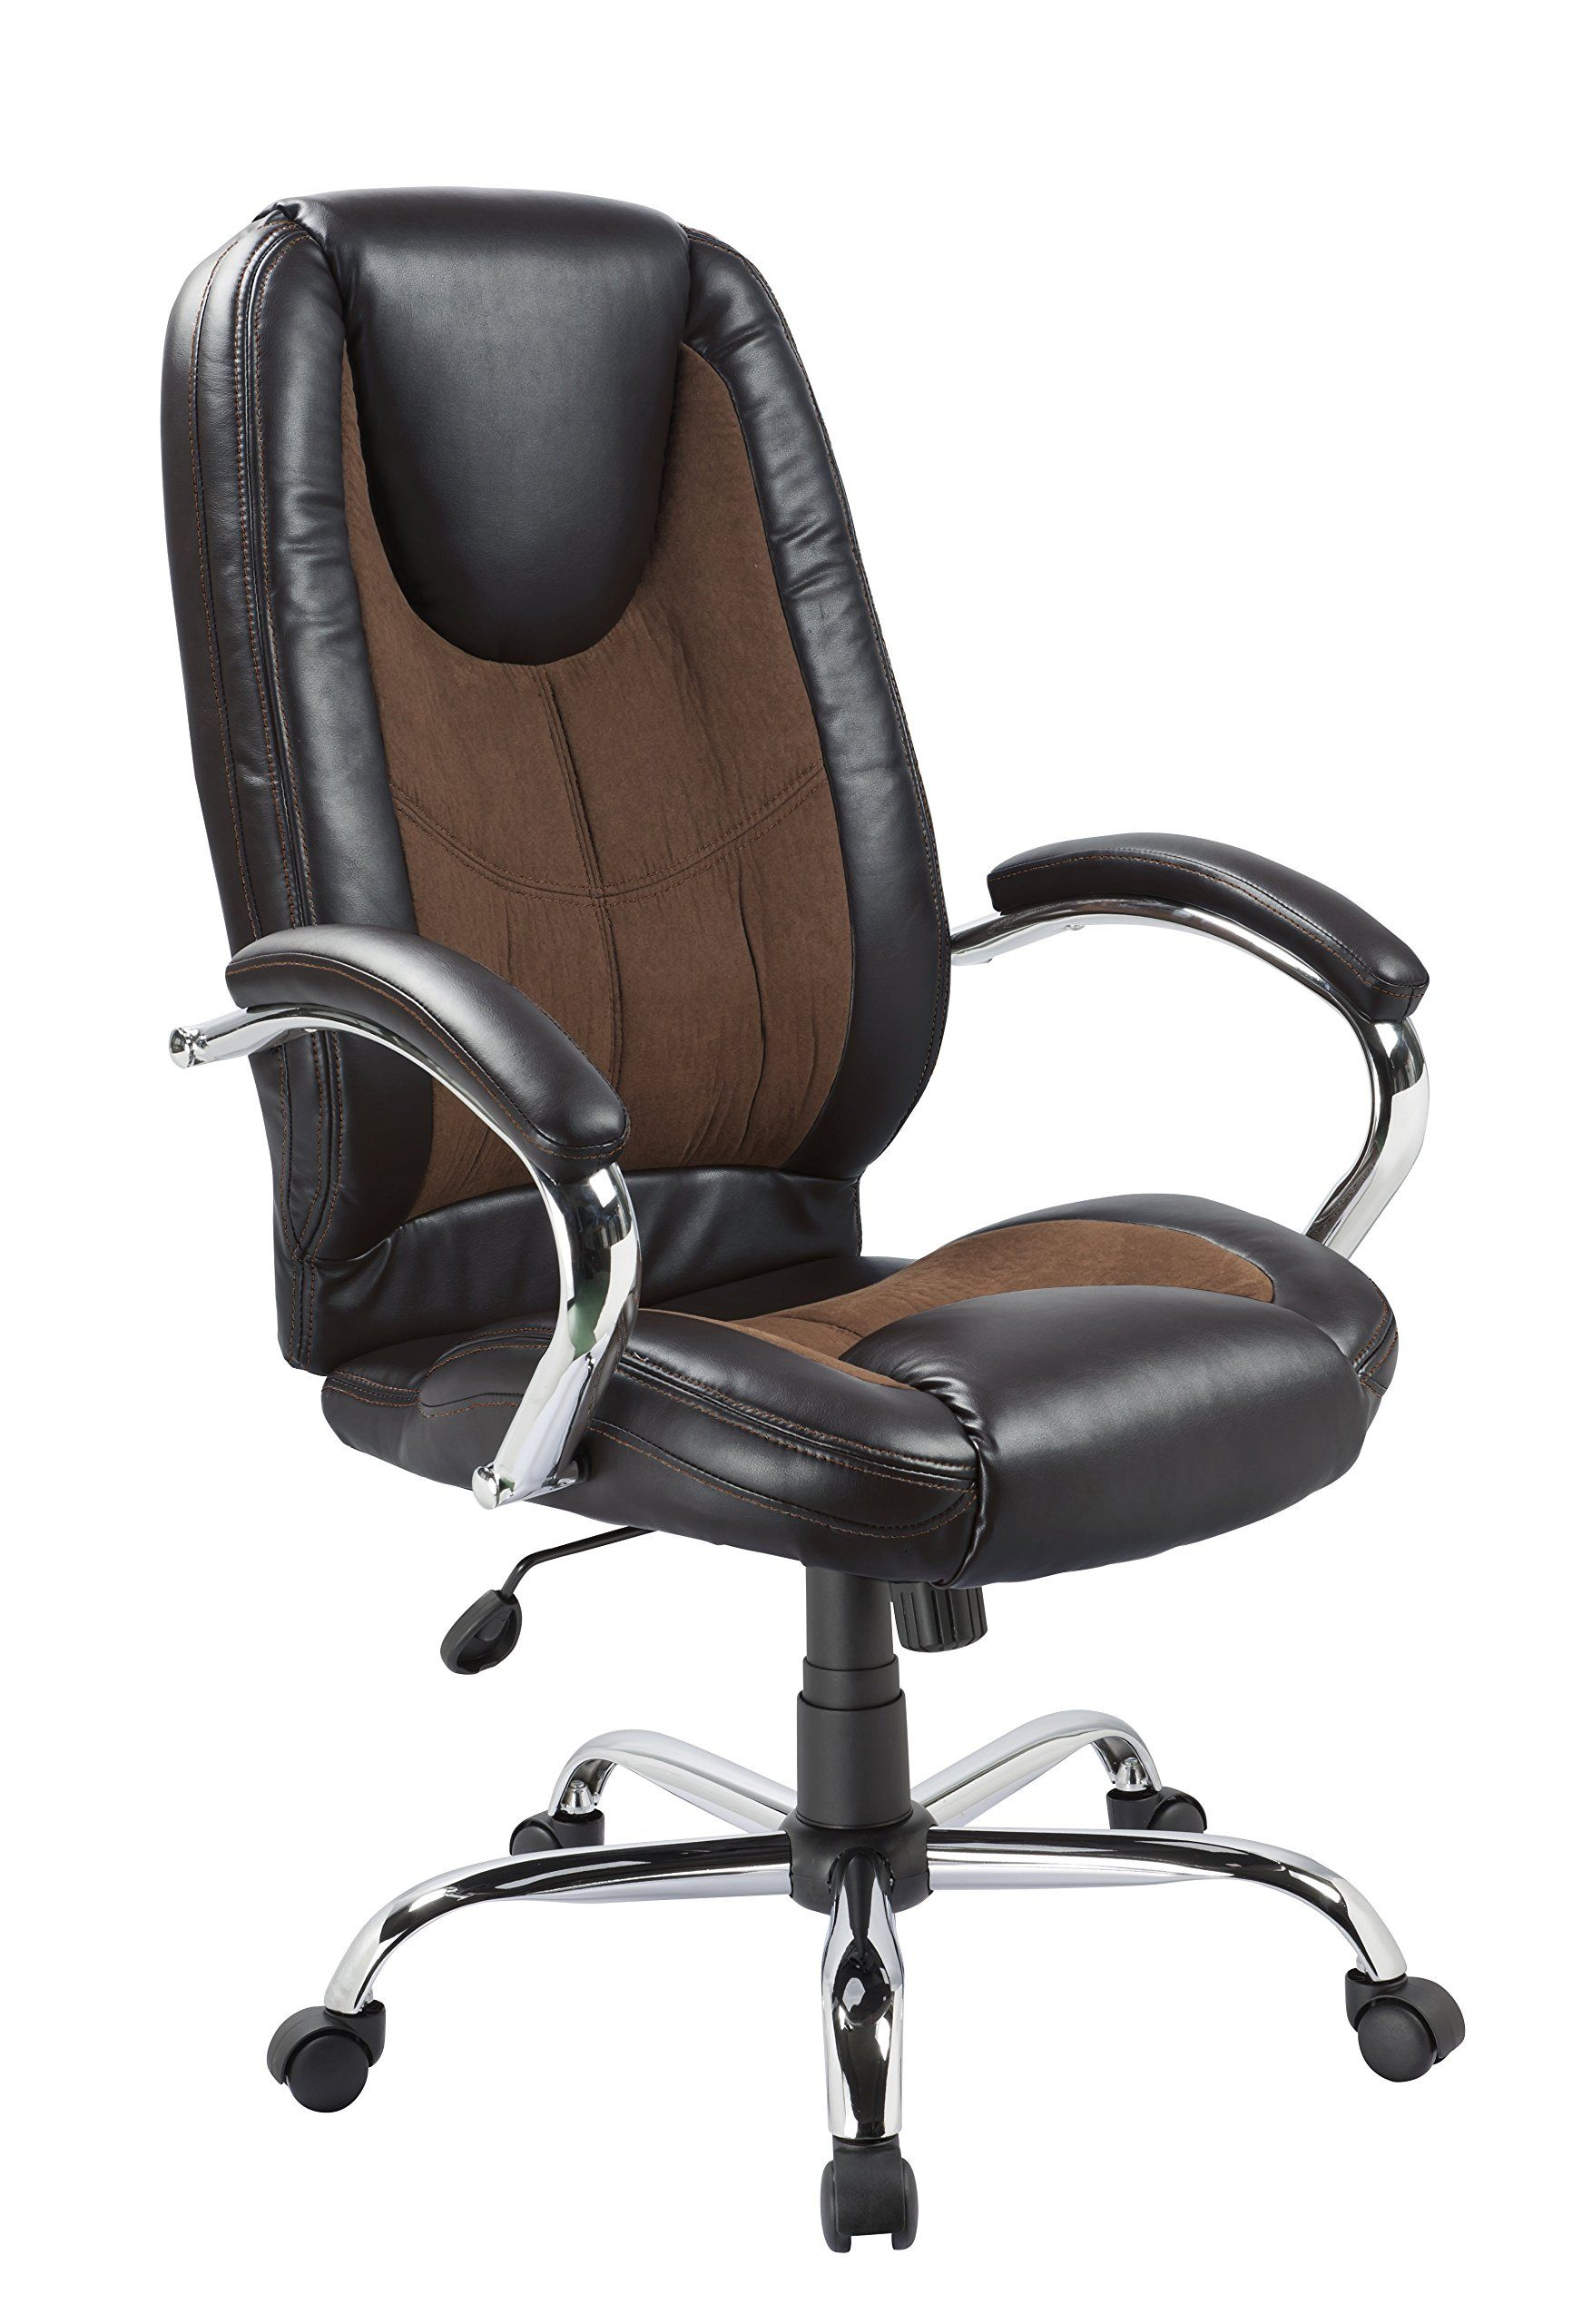 Office Factor Black Pu And Brown Microfiber With Contrast Sching Ergonomic High Back Executive Managerial Chair Padded Arms Swivel Lumbar Support